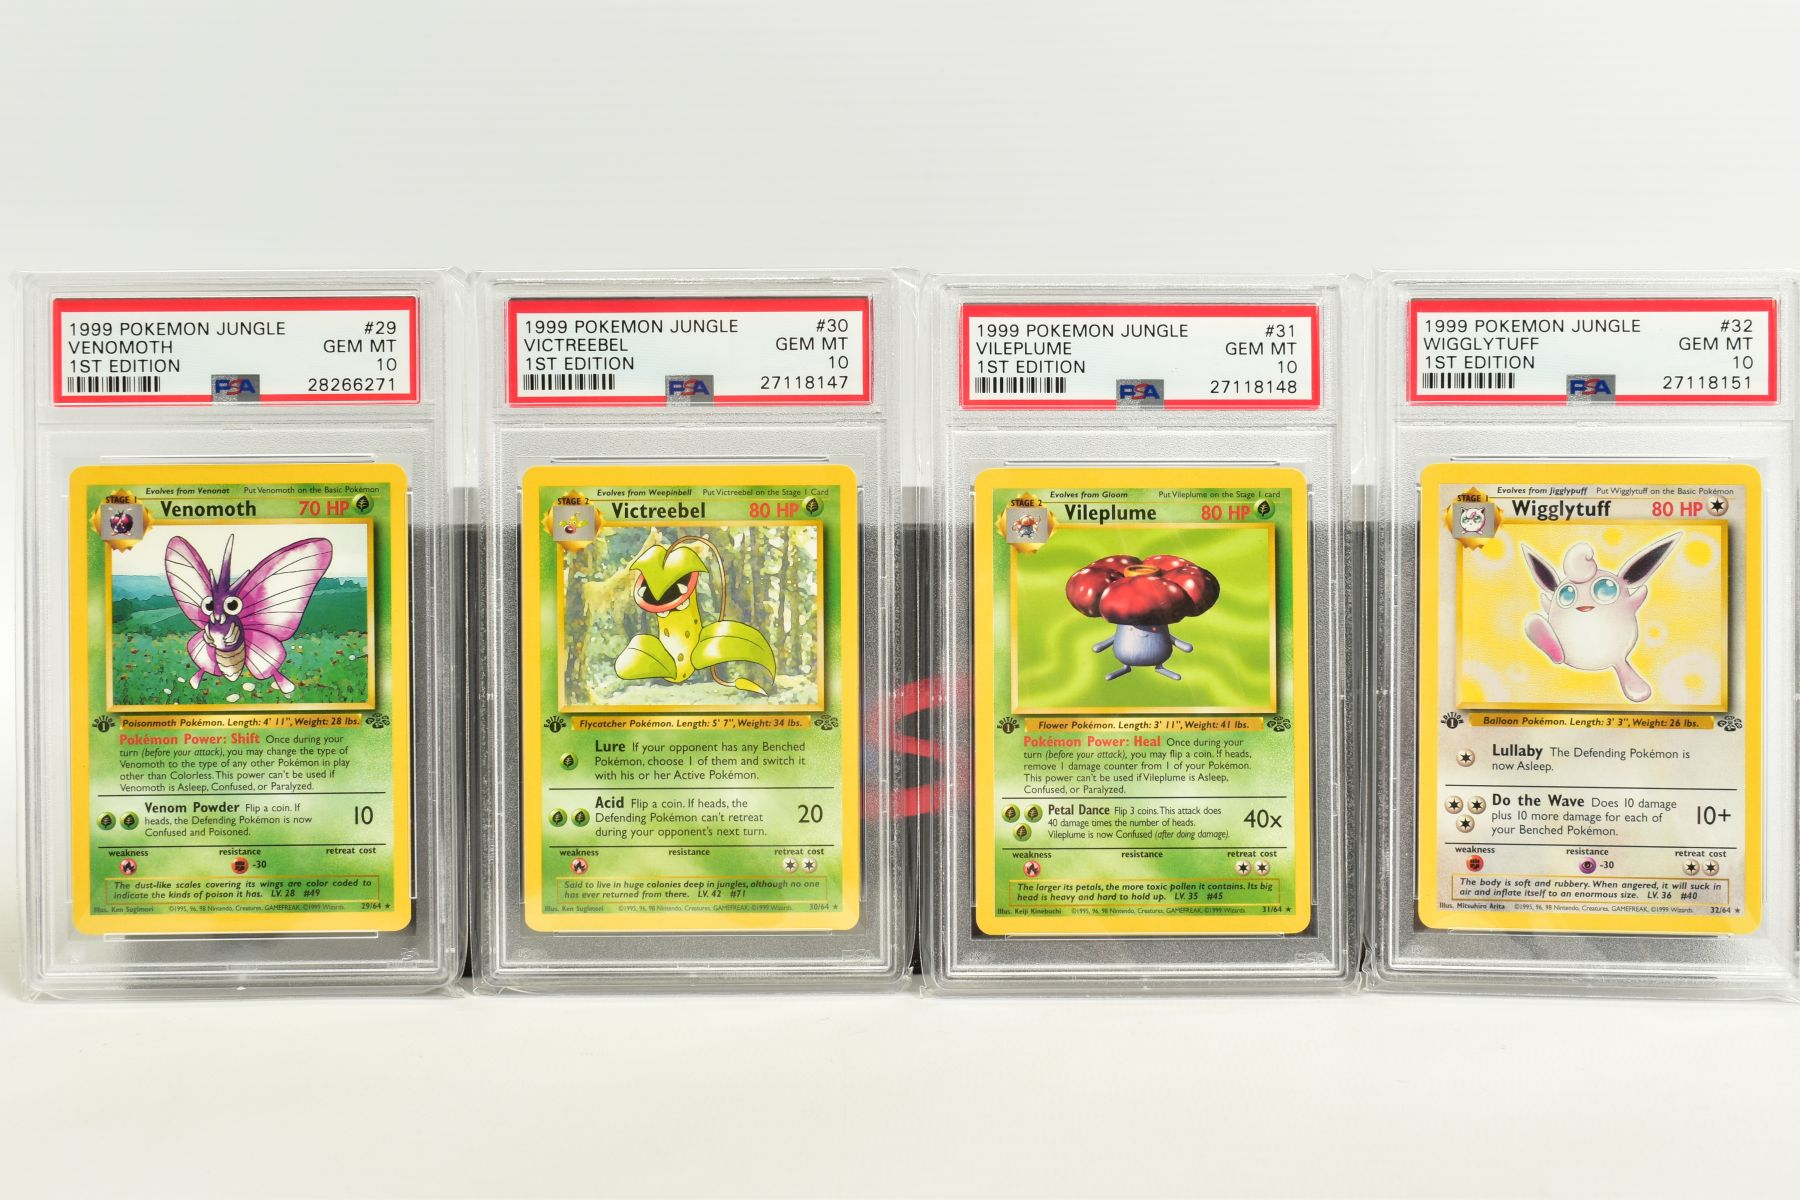 A QUANTITY OF PSA GRADED POKEMON 1ST EDITION JUNGLE SET CARDS, all are graded GEM MINT 10 and are - Image 5 of 13